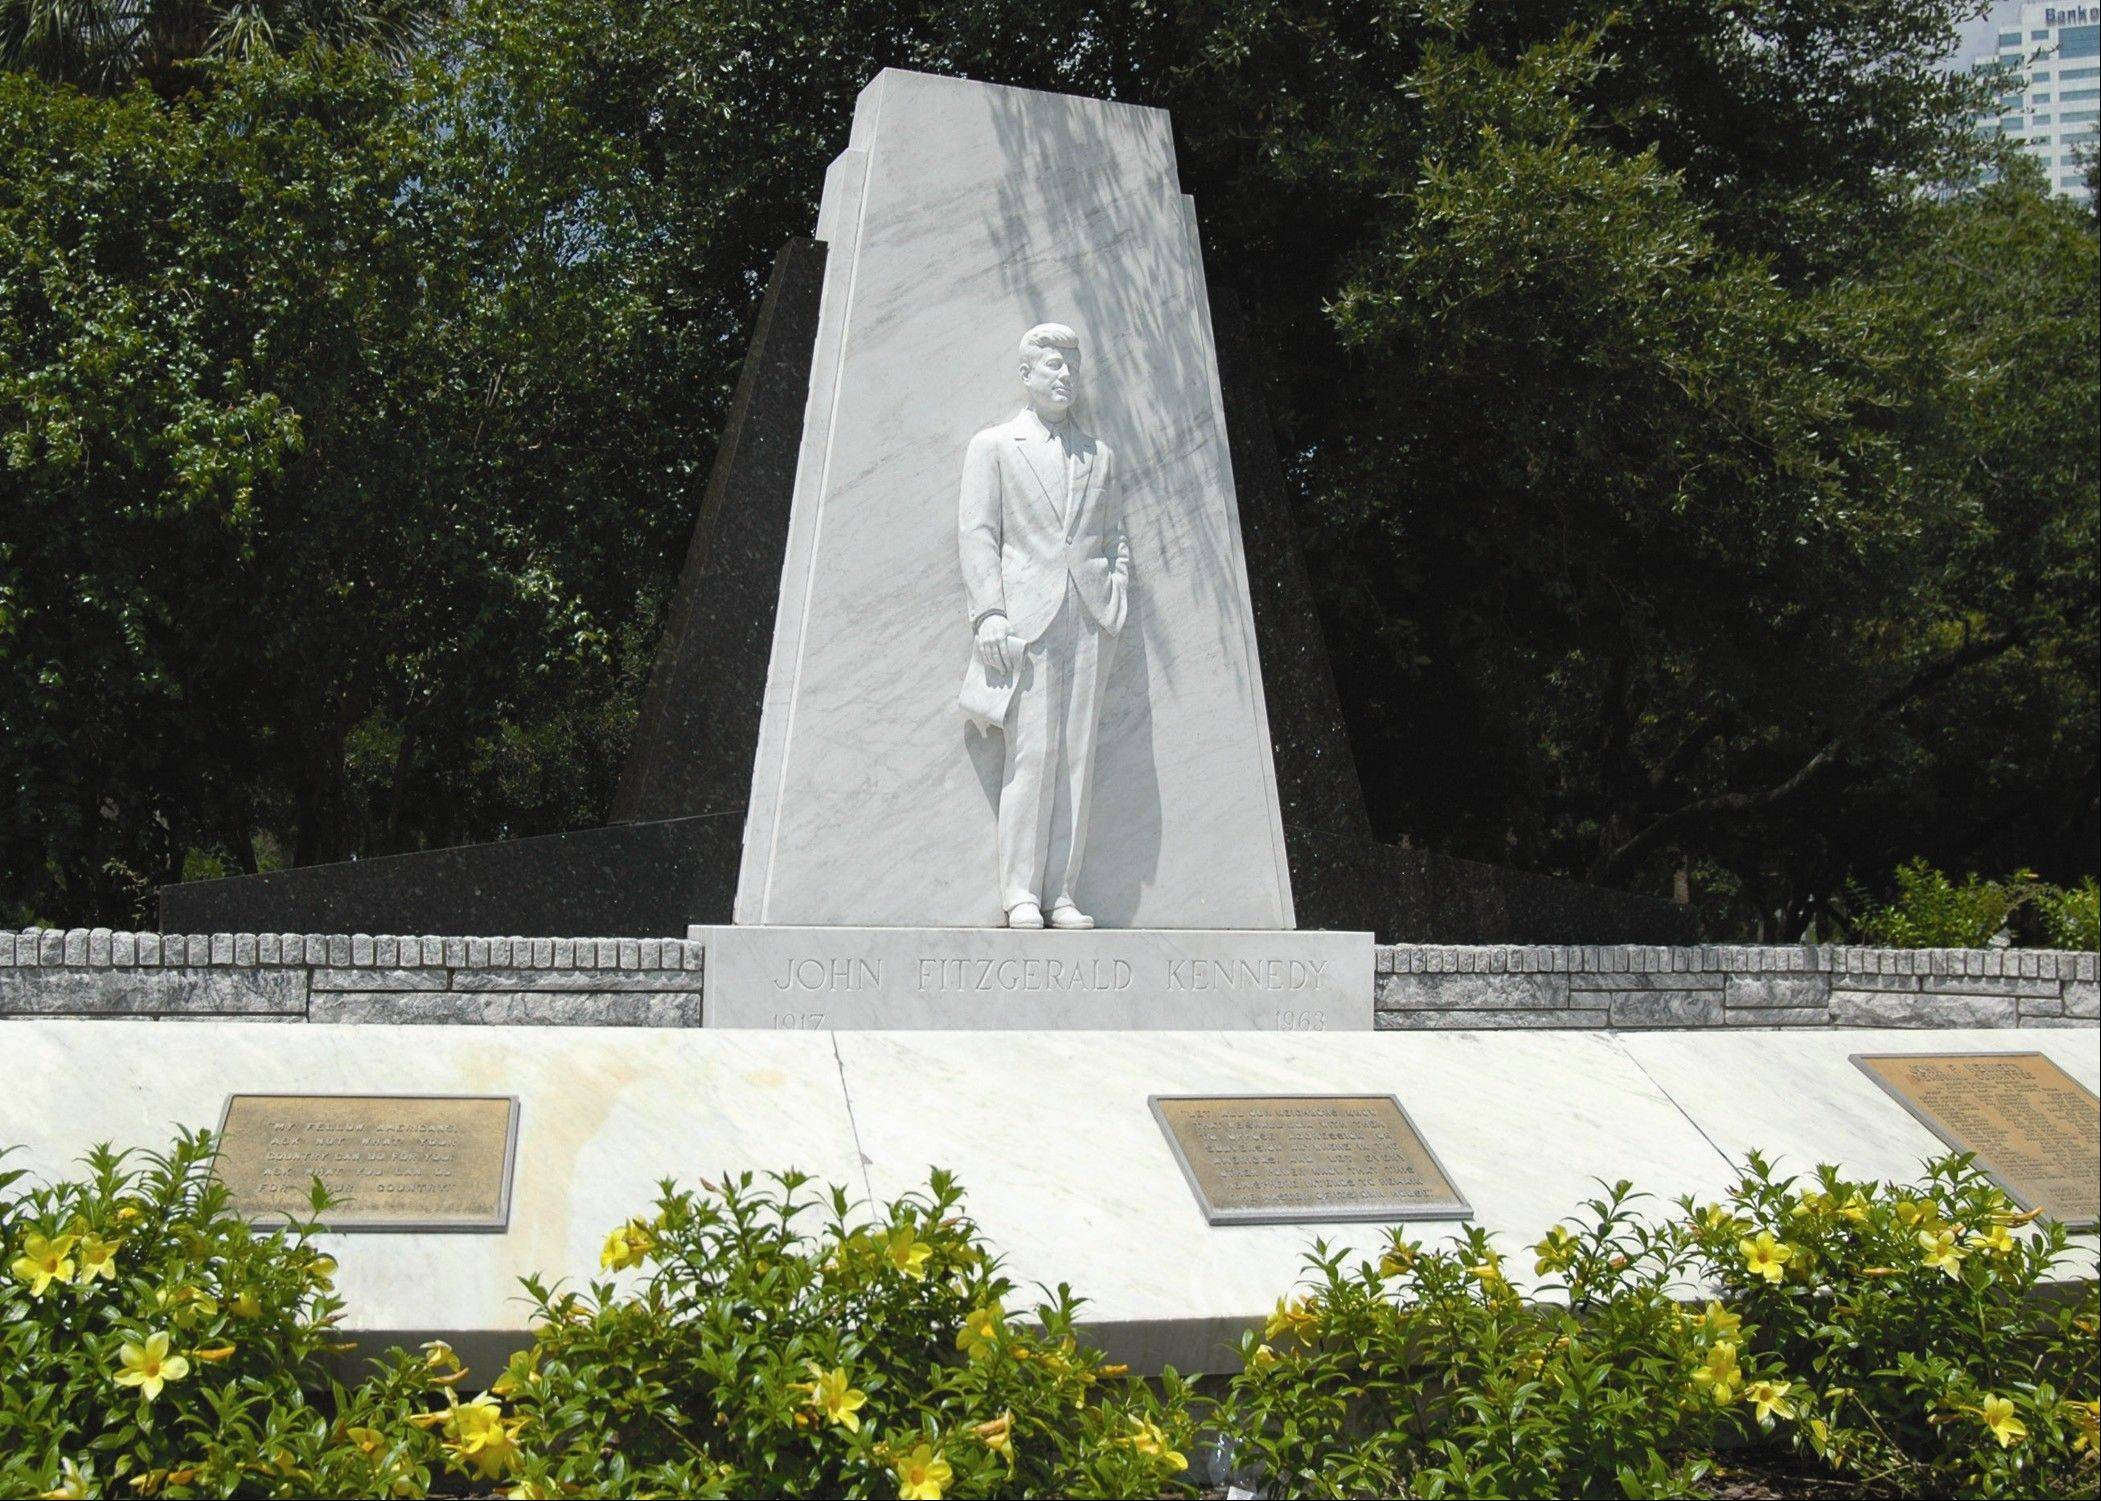 A statue of John F. Kennedy in Plant Park is situated on the University of Tampa campus. A street named Kennedy Boulevard memorializes the president's visit to Tampa four days before he was shot in 1963.